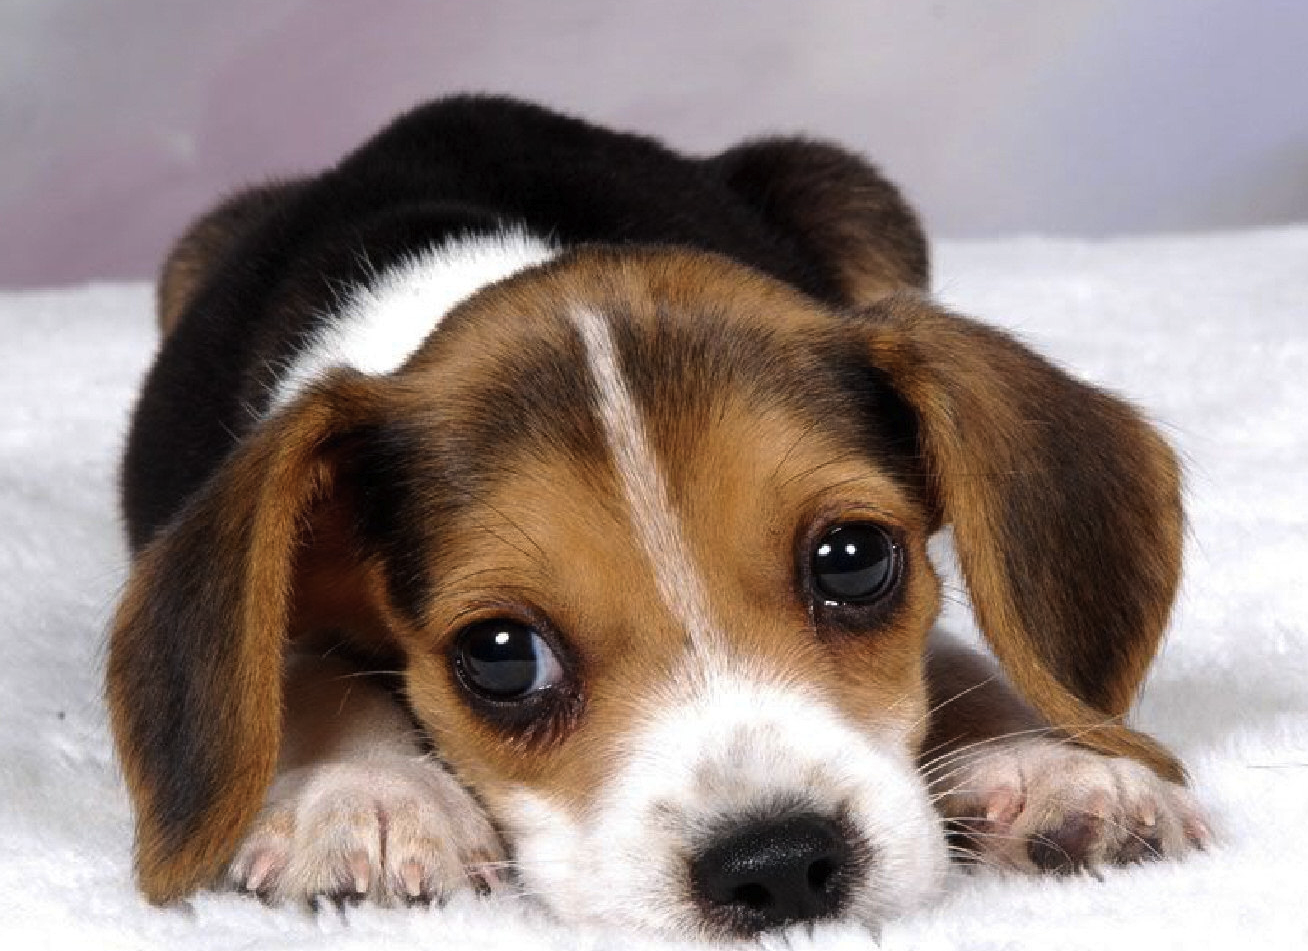 Beagle puppy, on a carpet. http://t.co/S3EErtwDFn